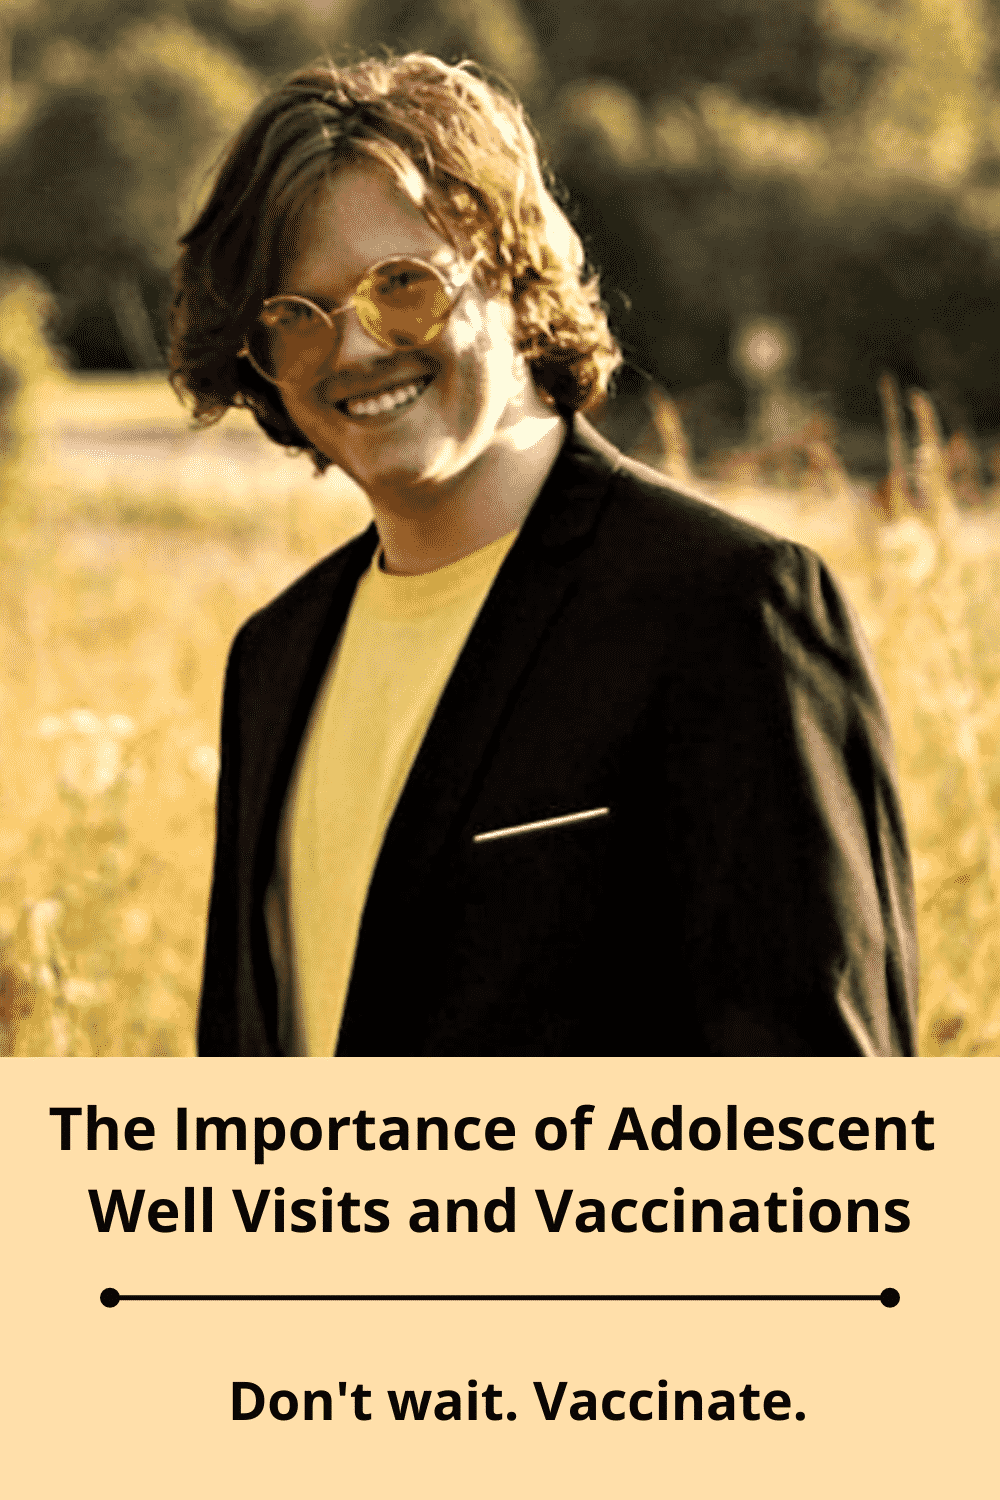 adolescent well visits